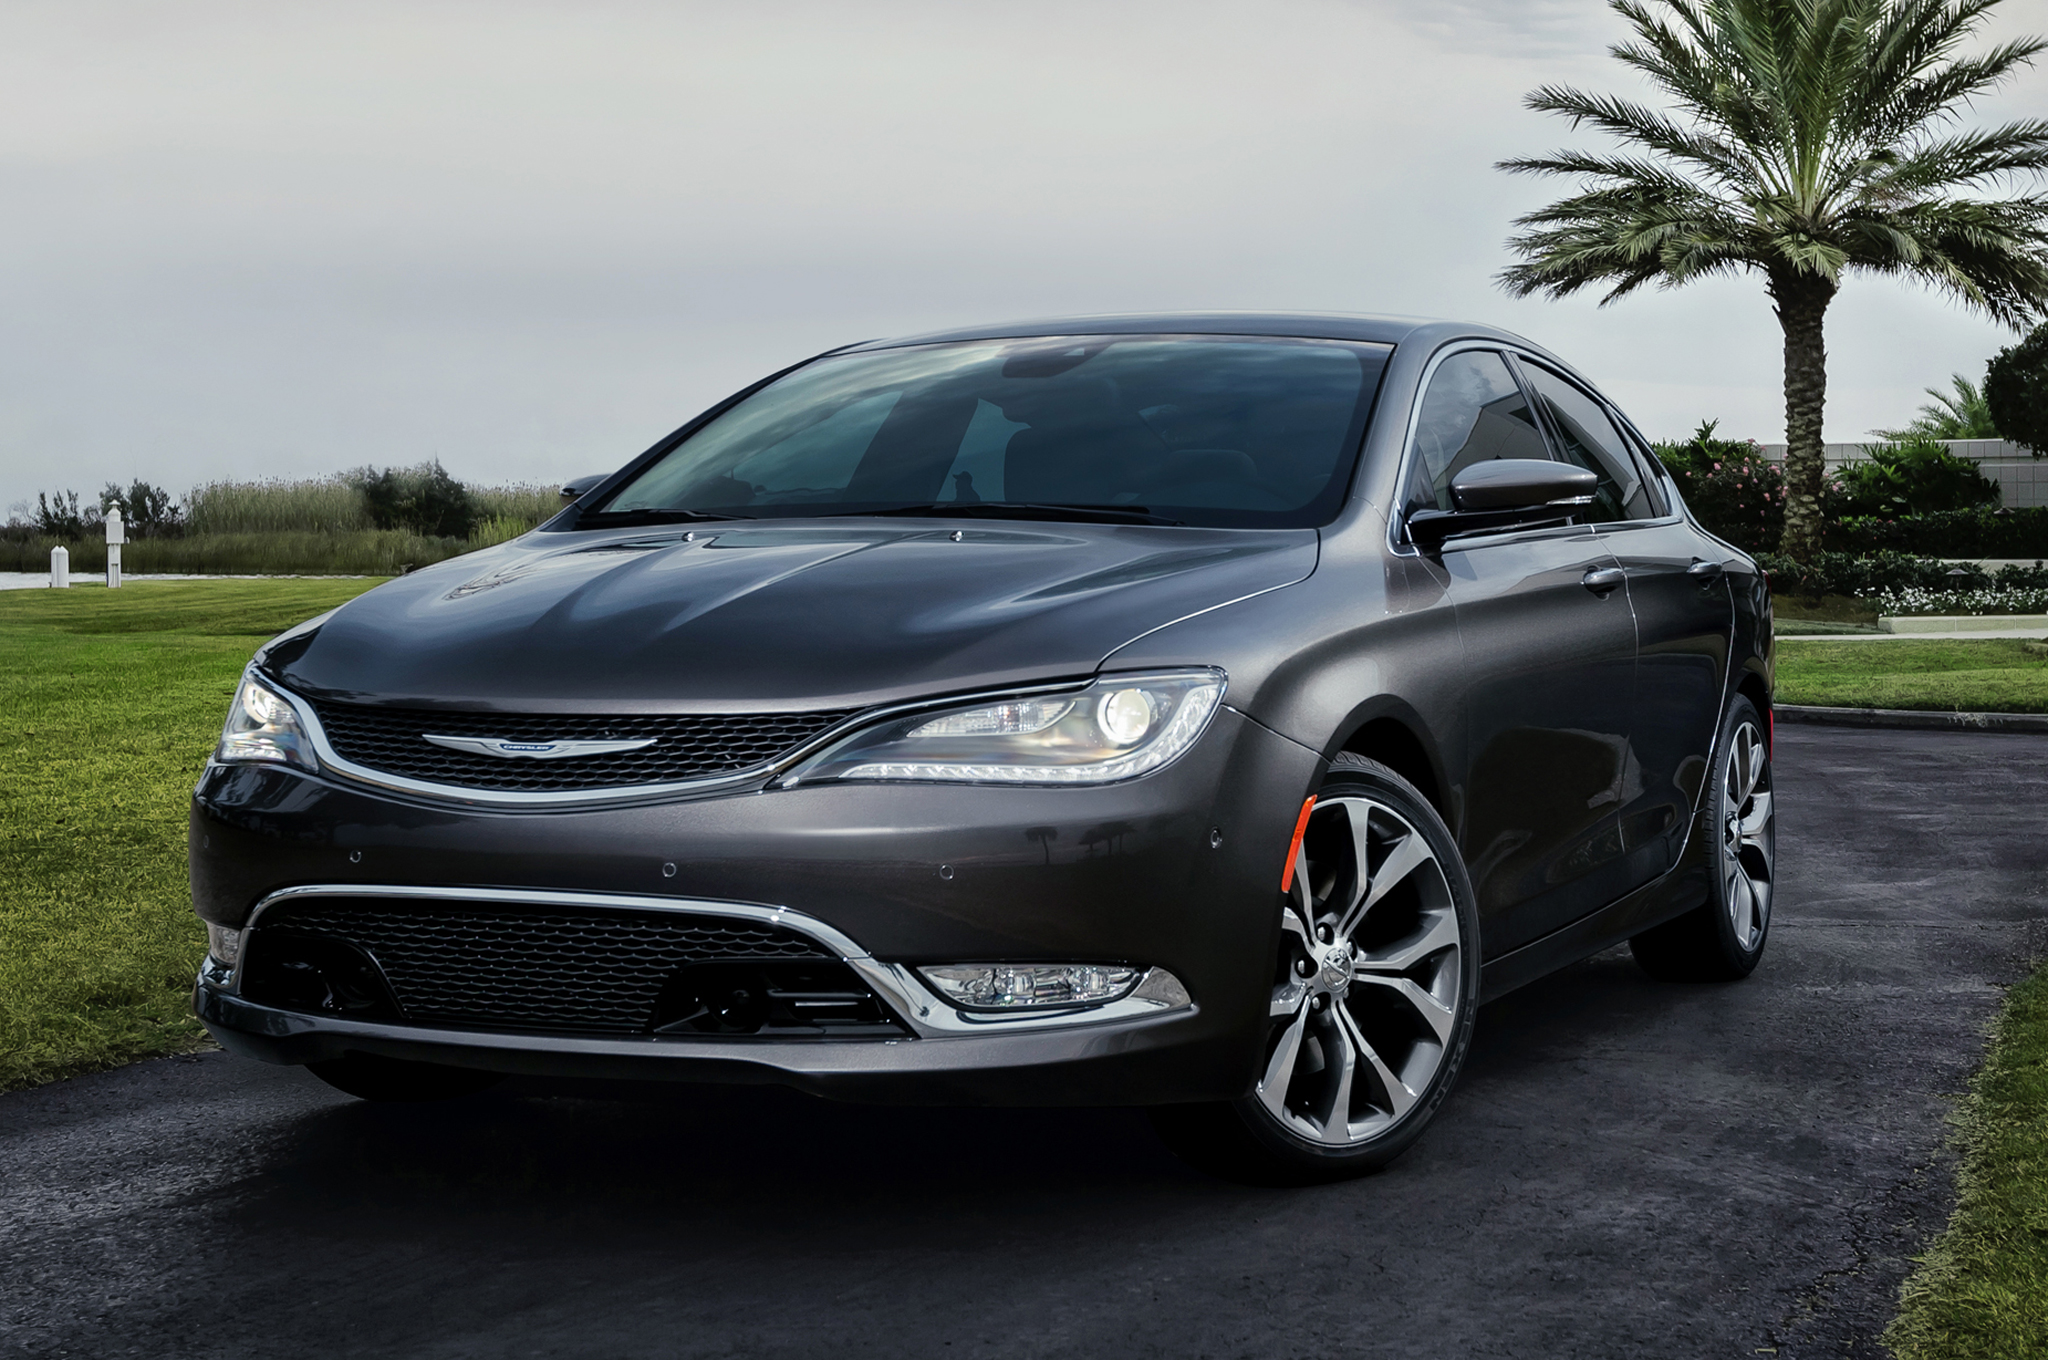 2048x1360 - Chrysler 200 Wallpapers 20